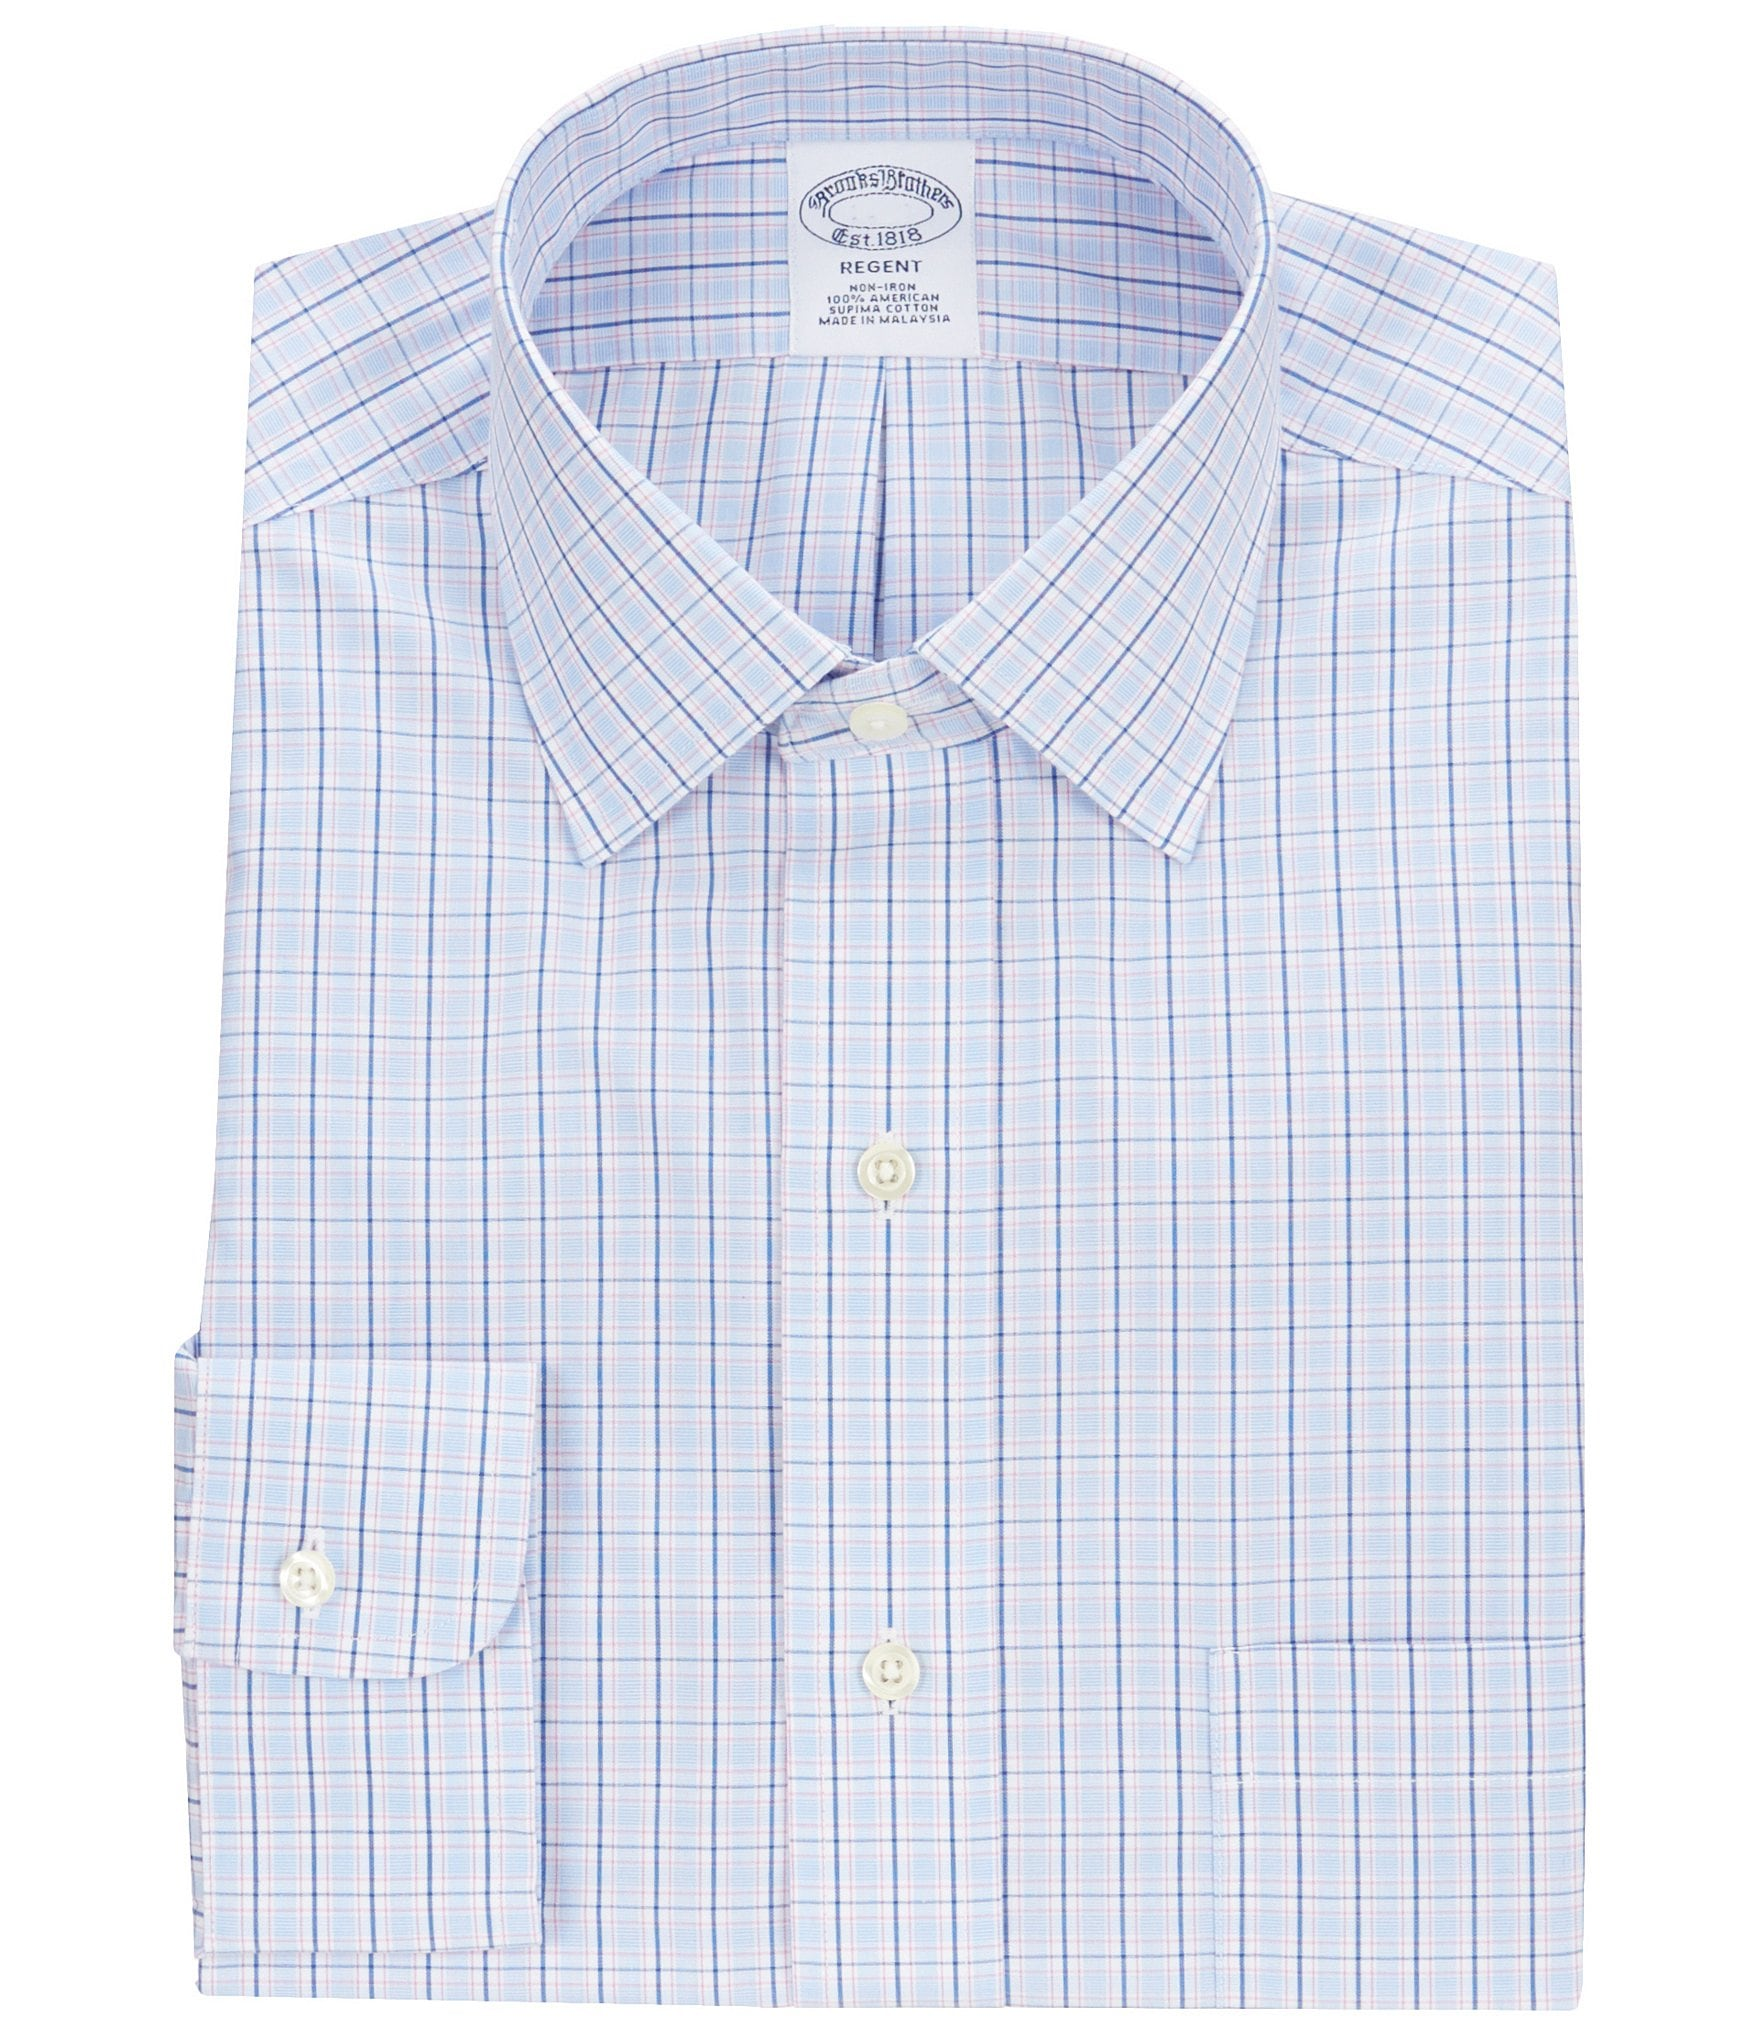 Brooks brothers non iron regent fit fitted classic fit for Brooks brothers non iron shirt review